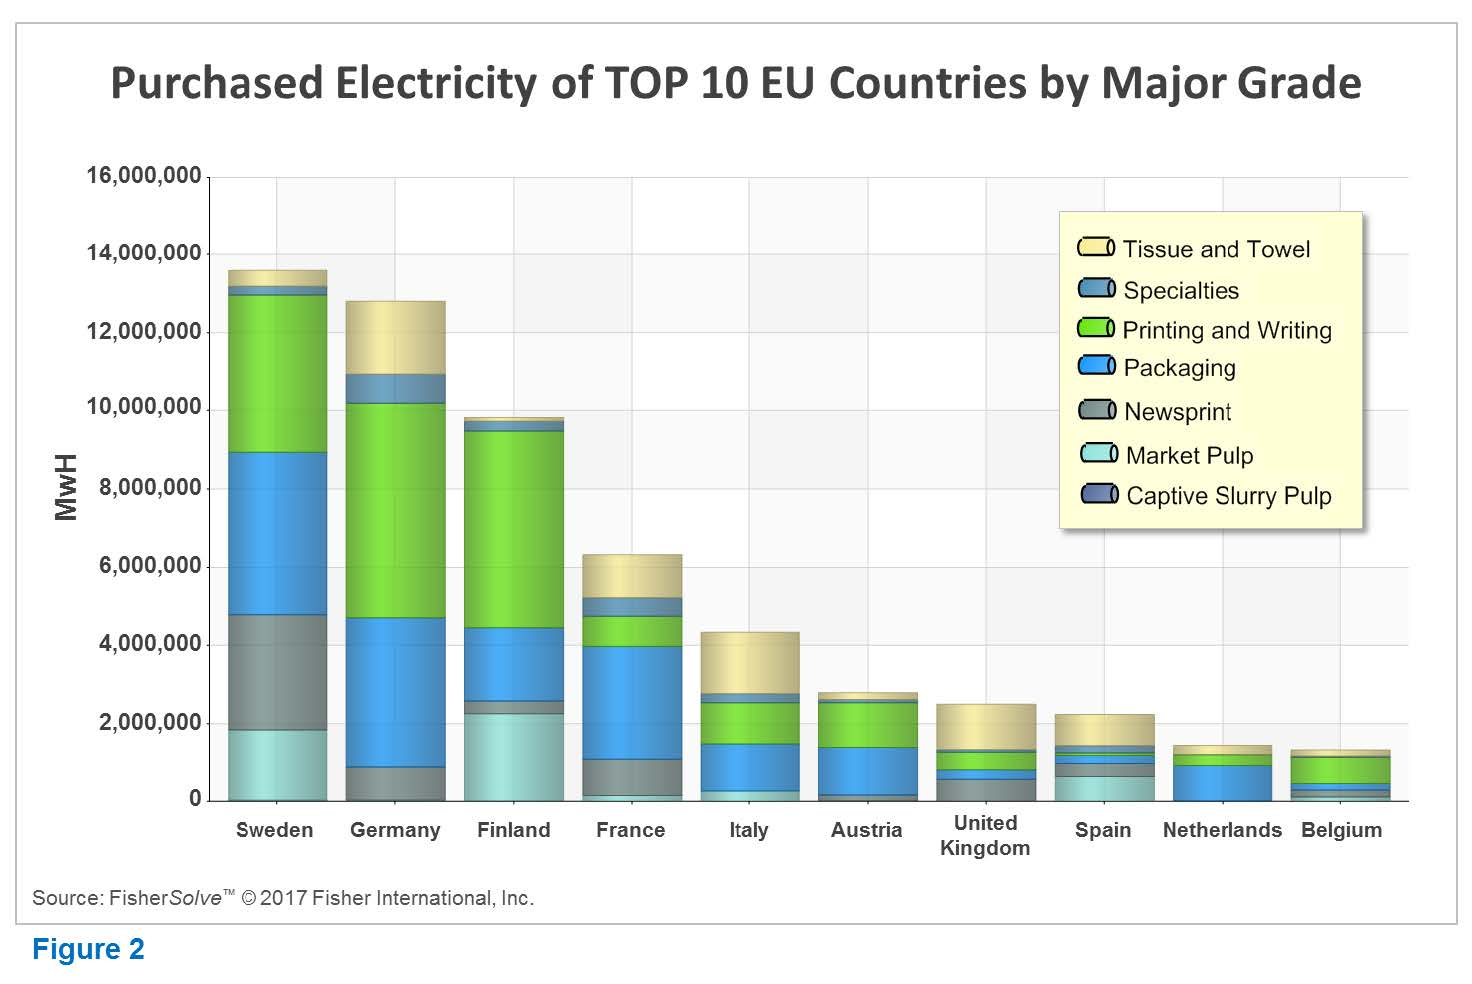 EU purchased electricity